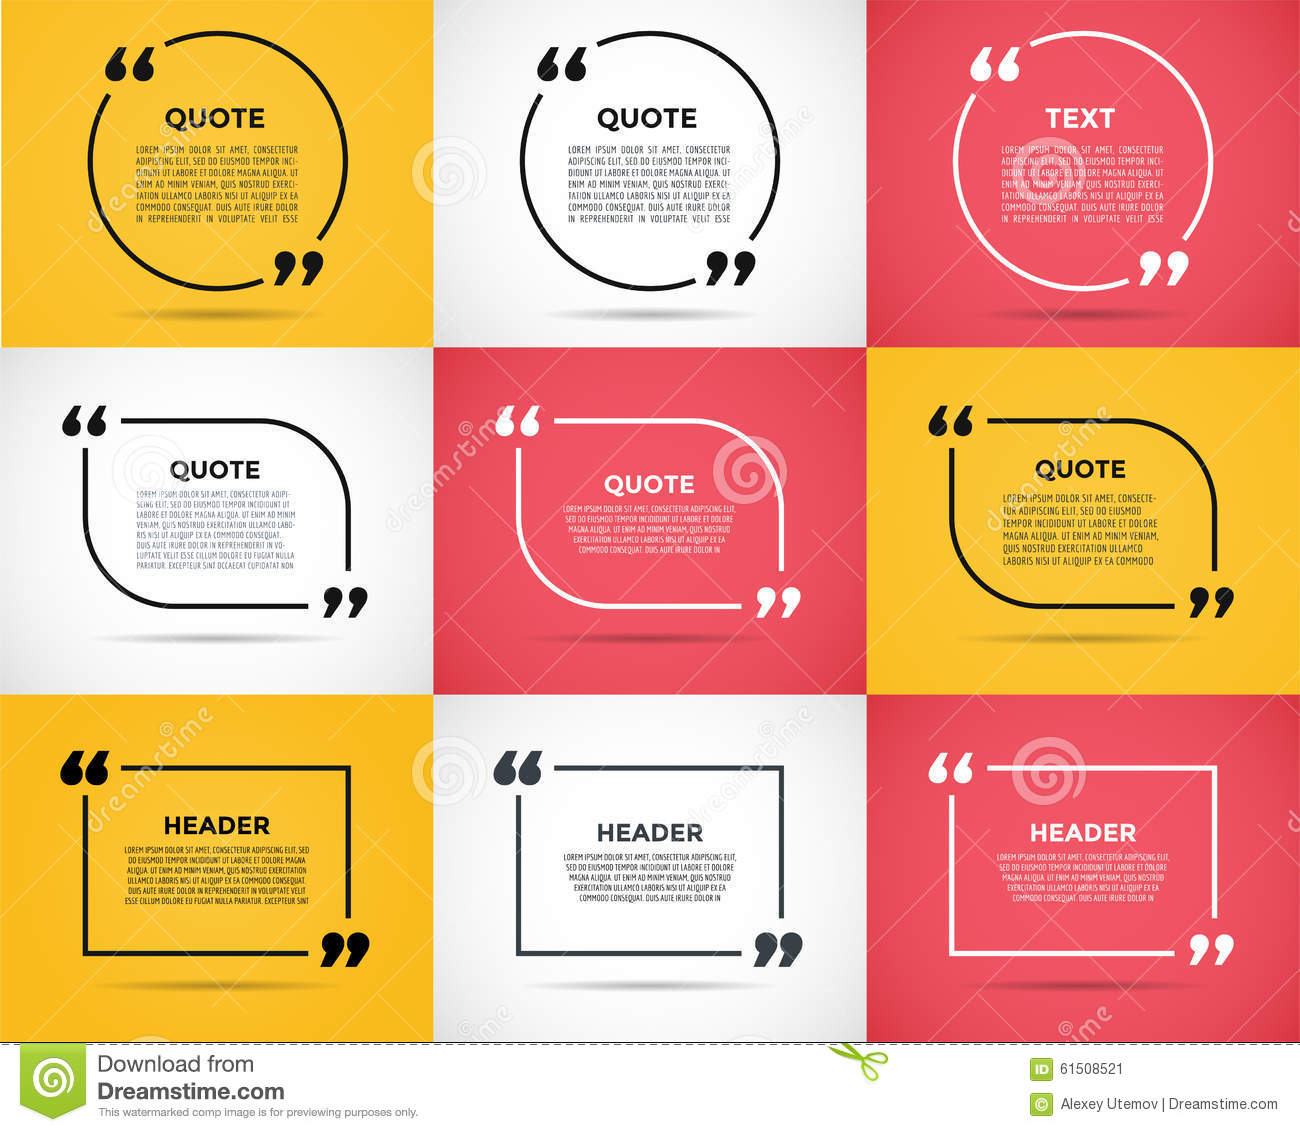 How To Quote A Website Website Review Quote Blank Template Illustration 61508521  Megapixl